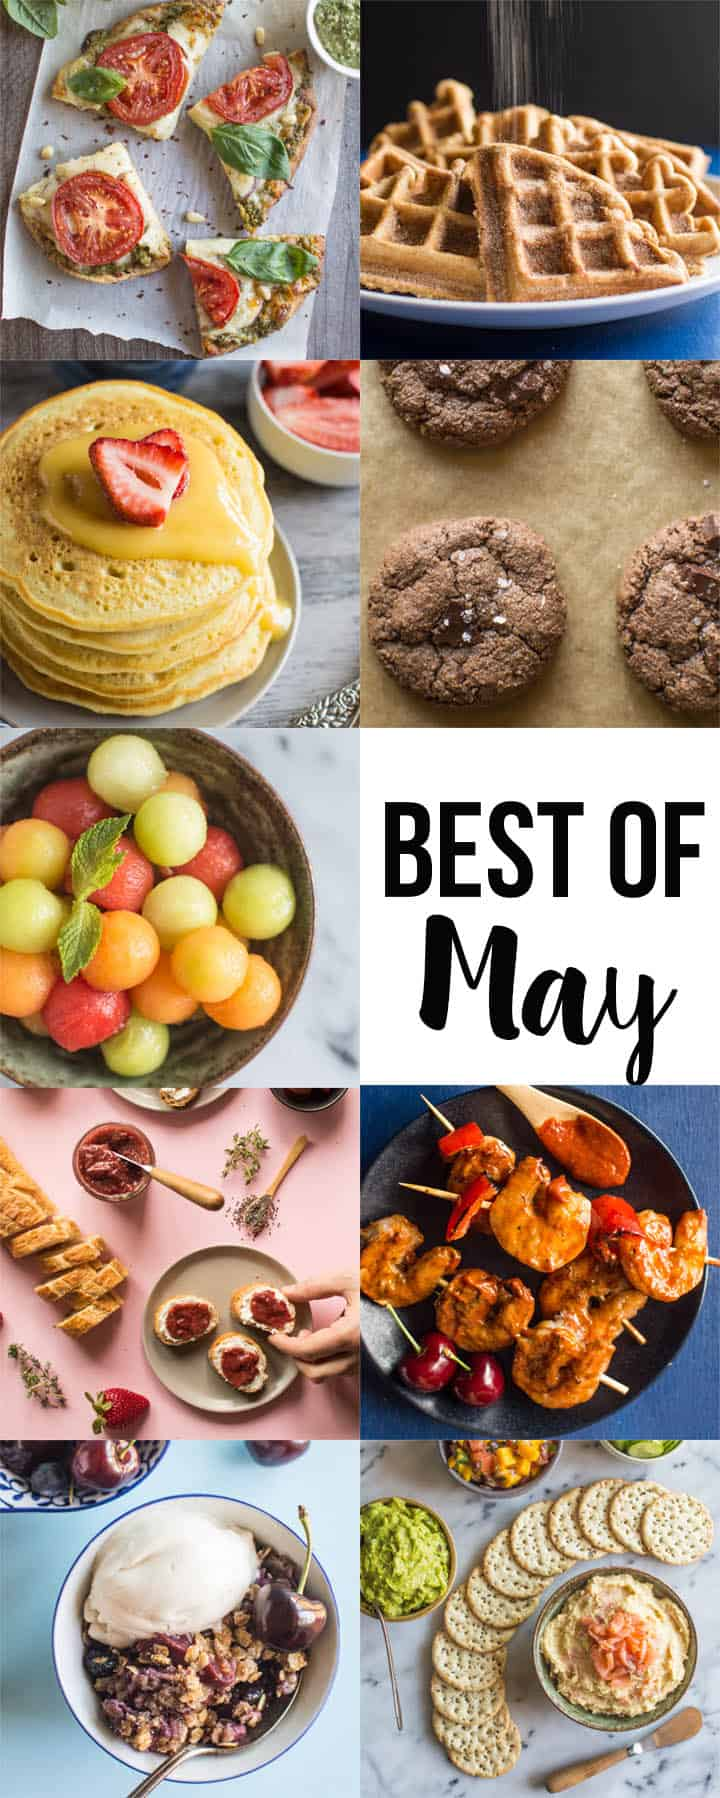 The BEST Recipes in May 2015 on Healthy Nibbles & Bits | healthynibblesandbits.com